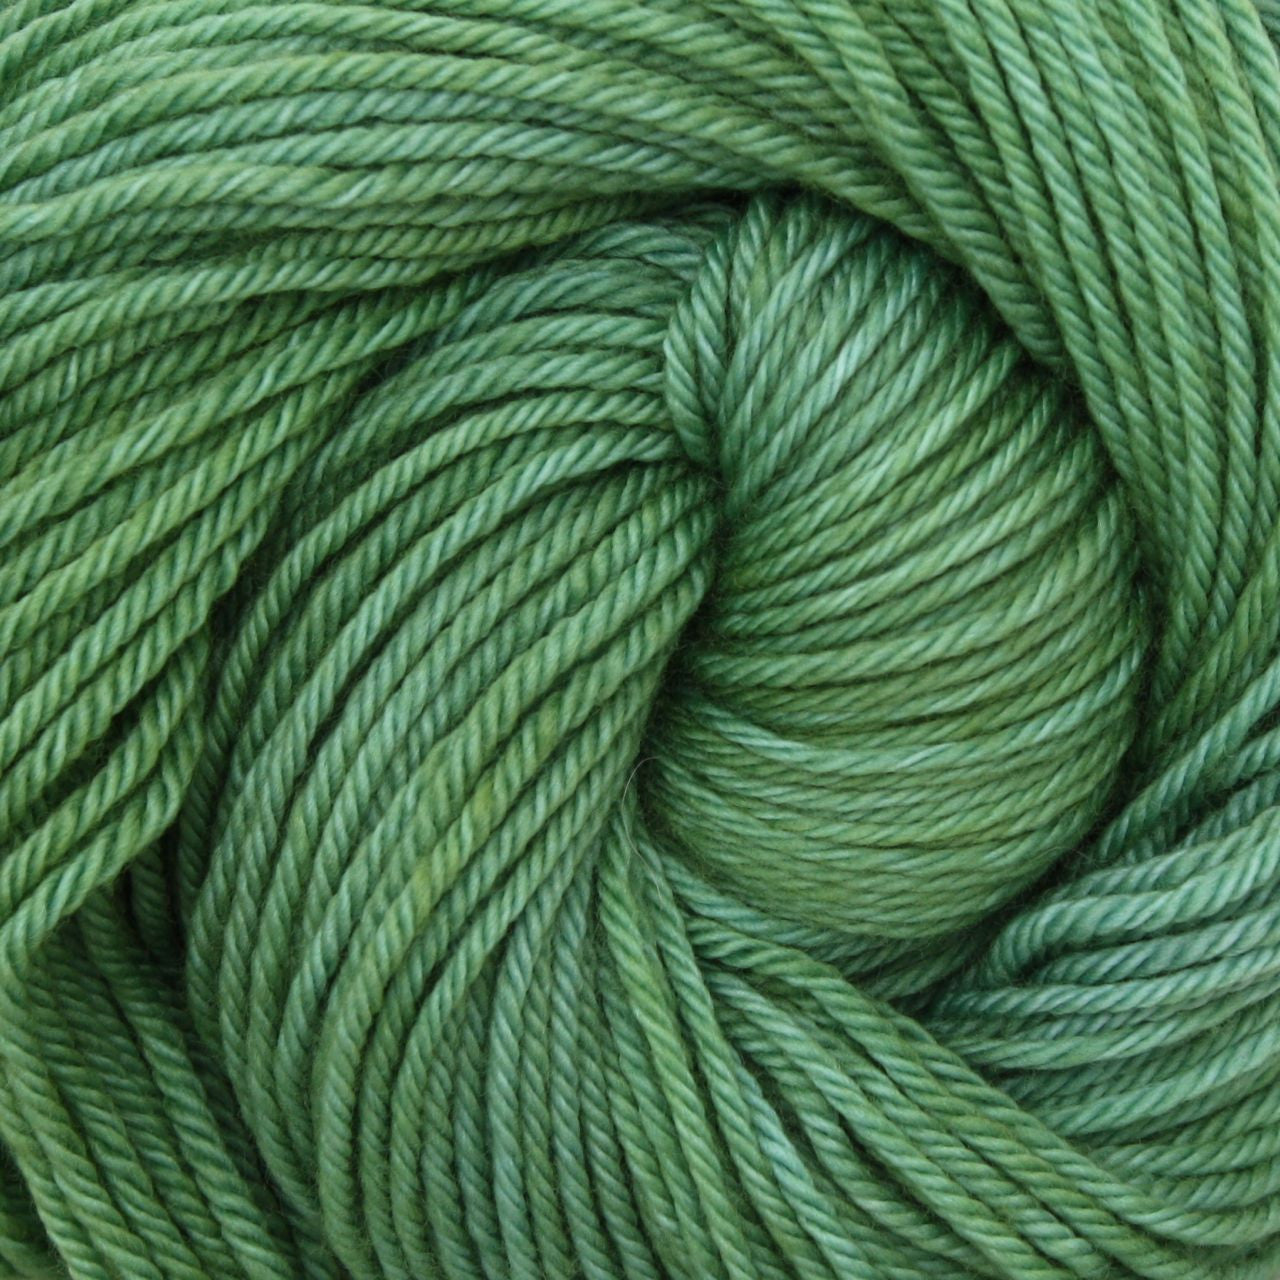 Supernova Yarn | Colorway: Celadon